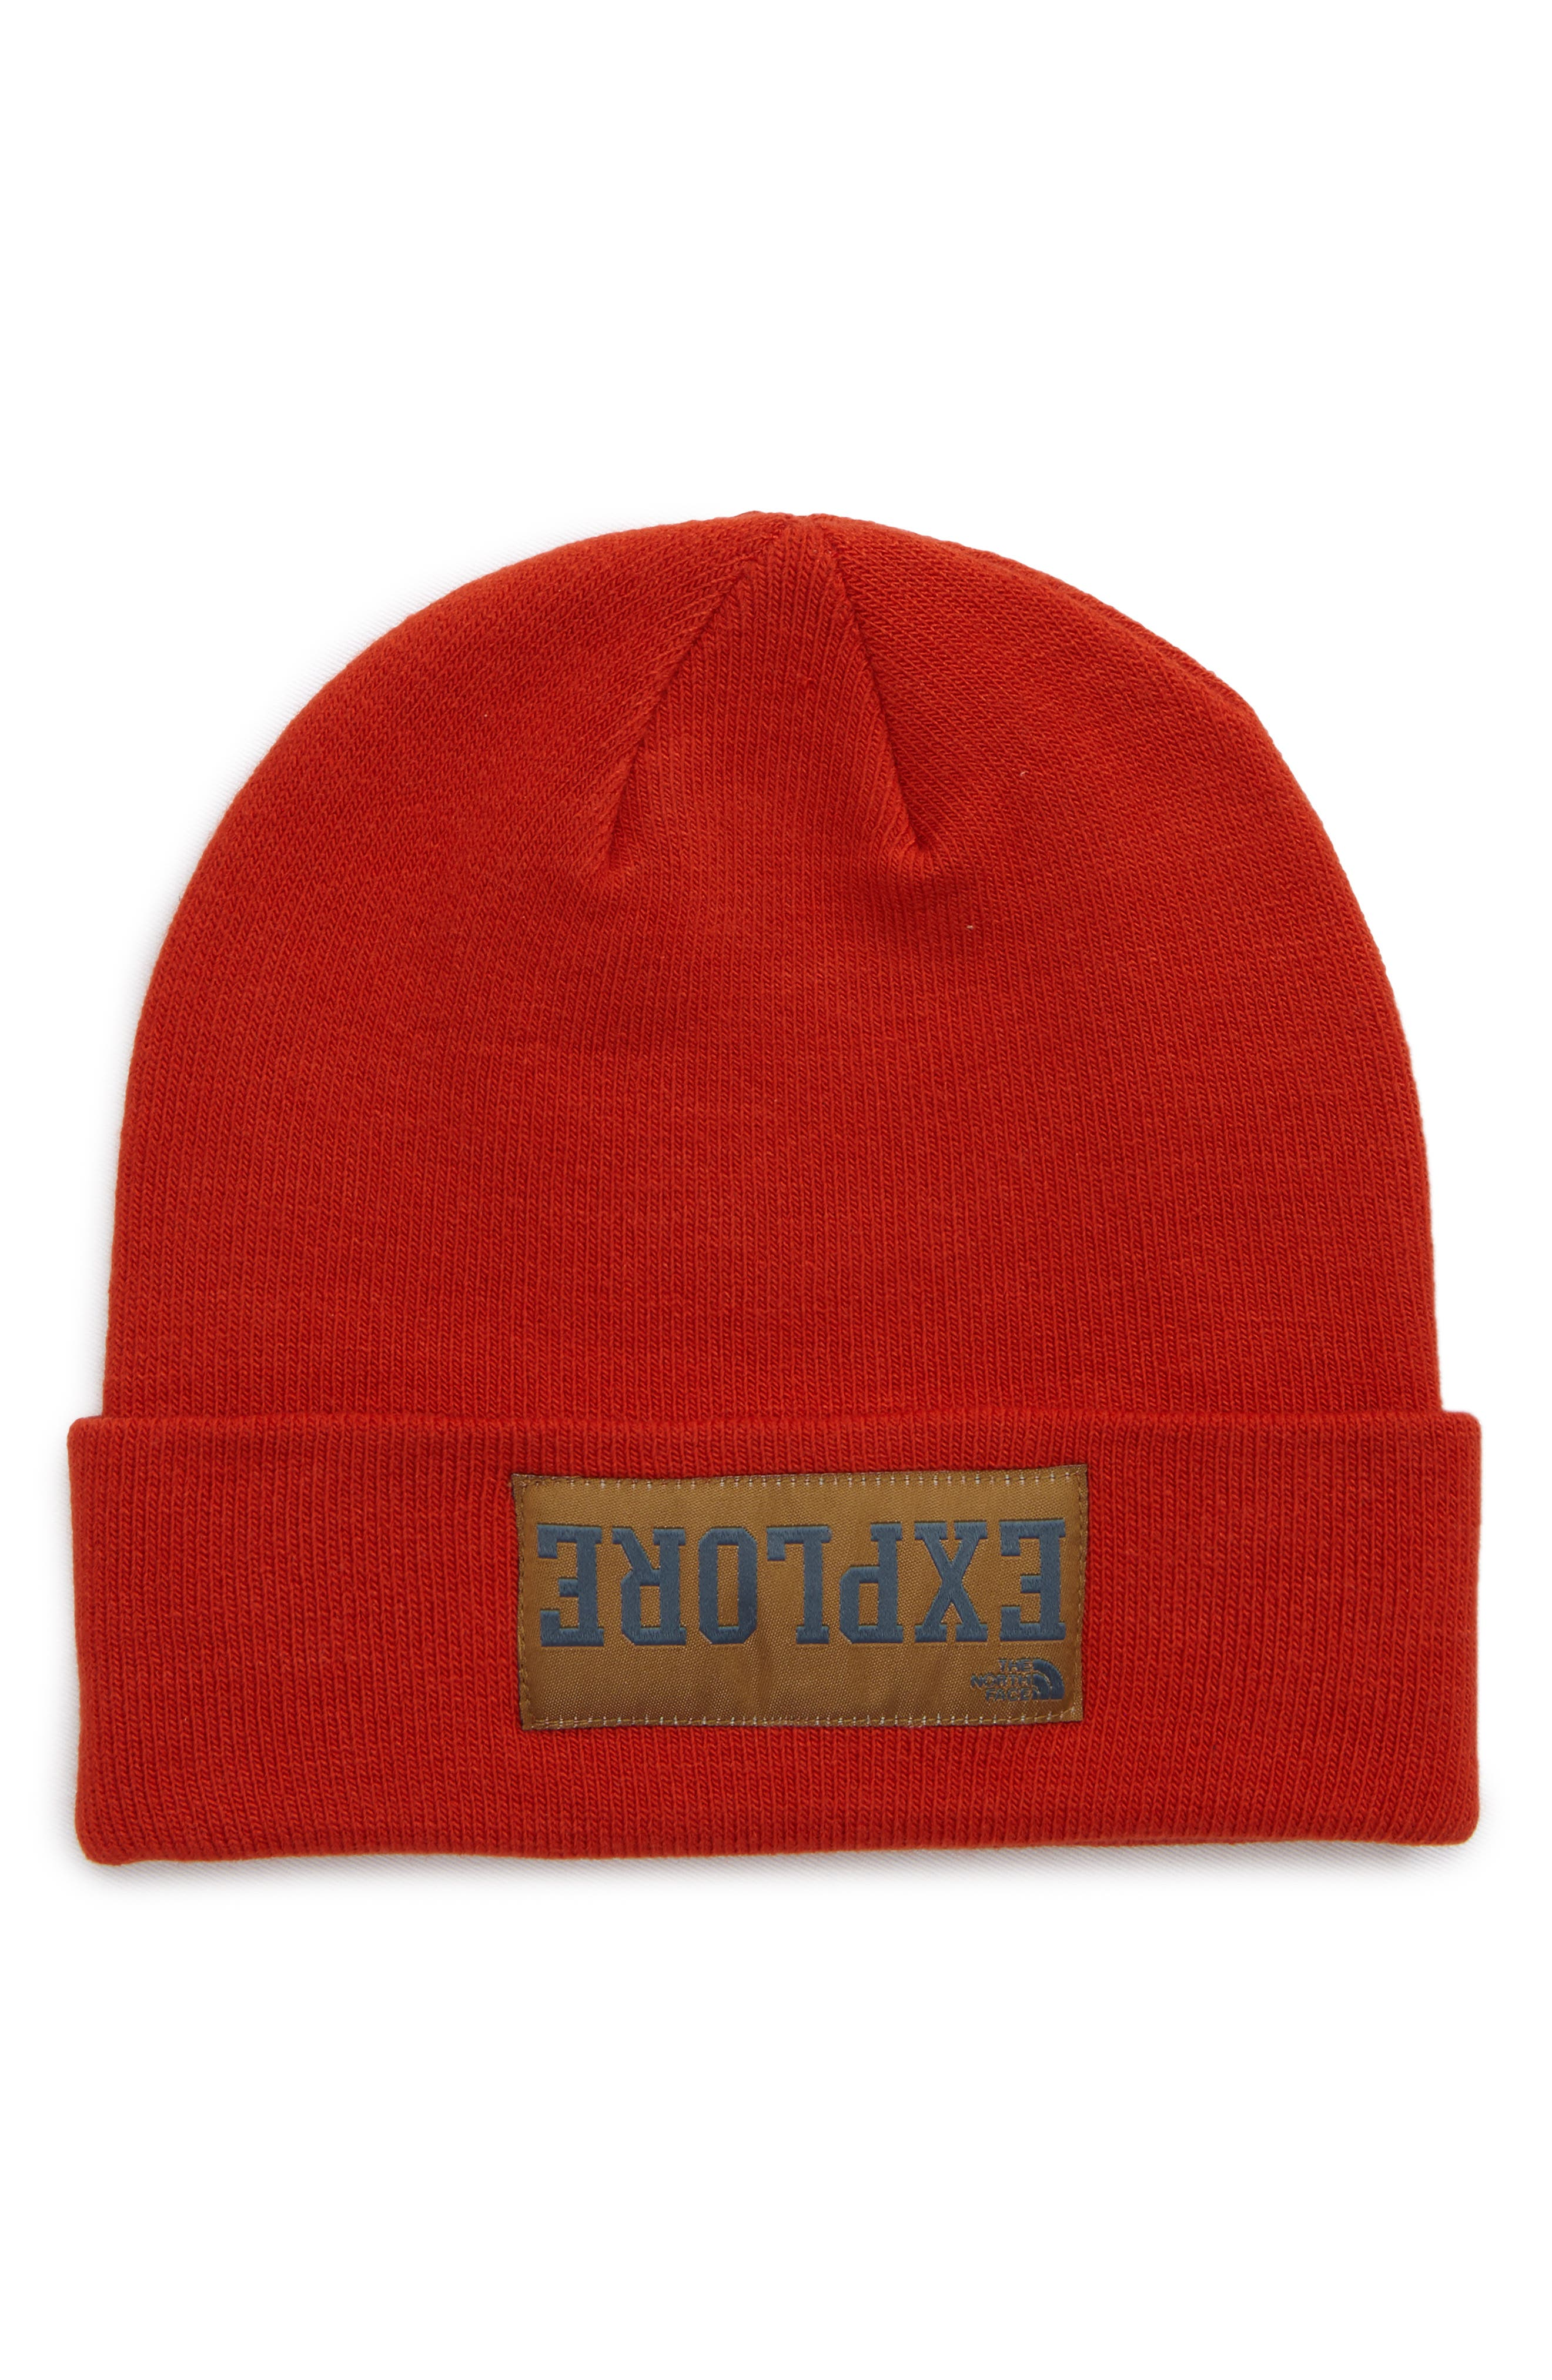 Alternate Image 1 Selected - The North Face Dock Worker Beanie (Big Boys)